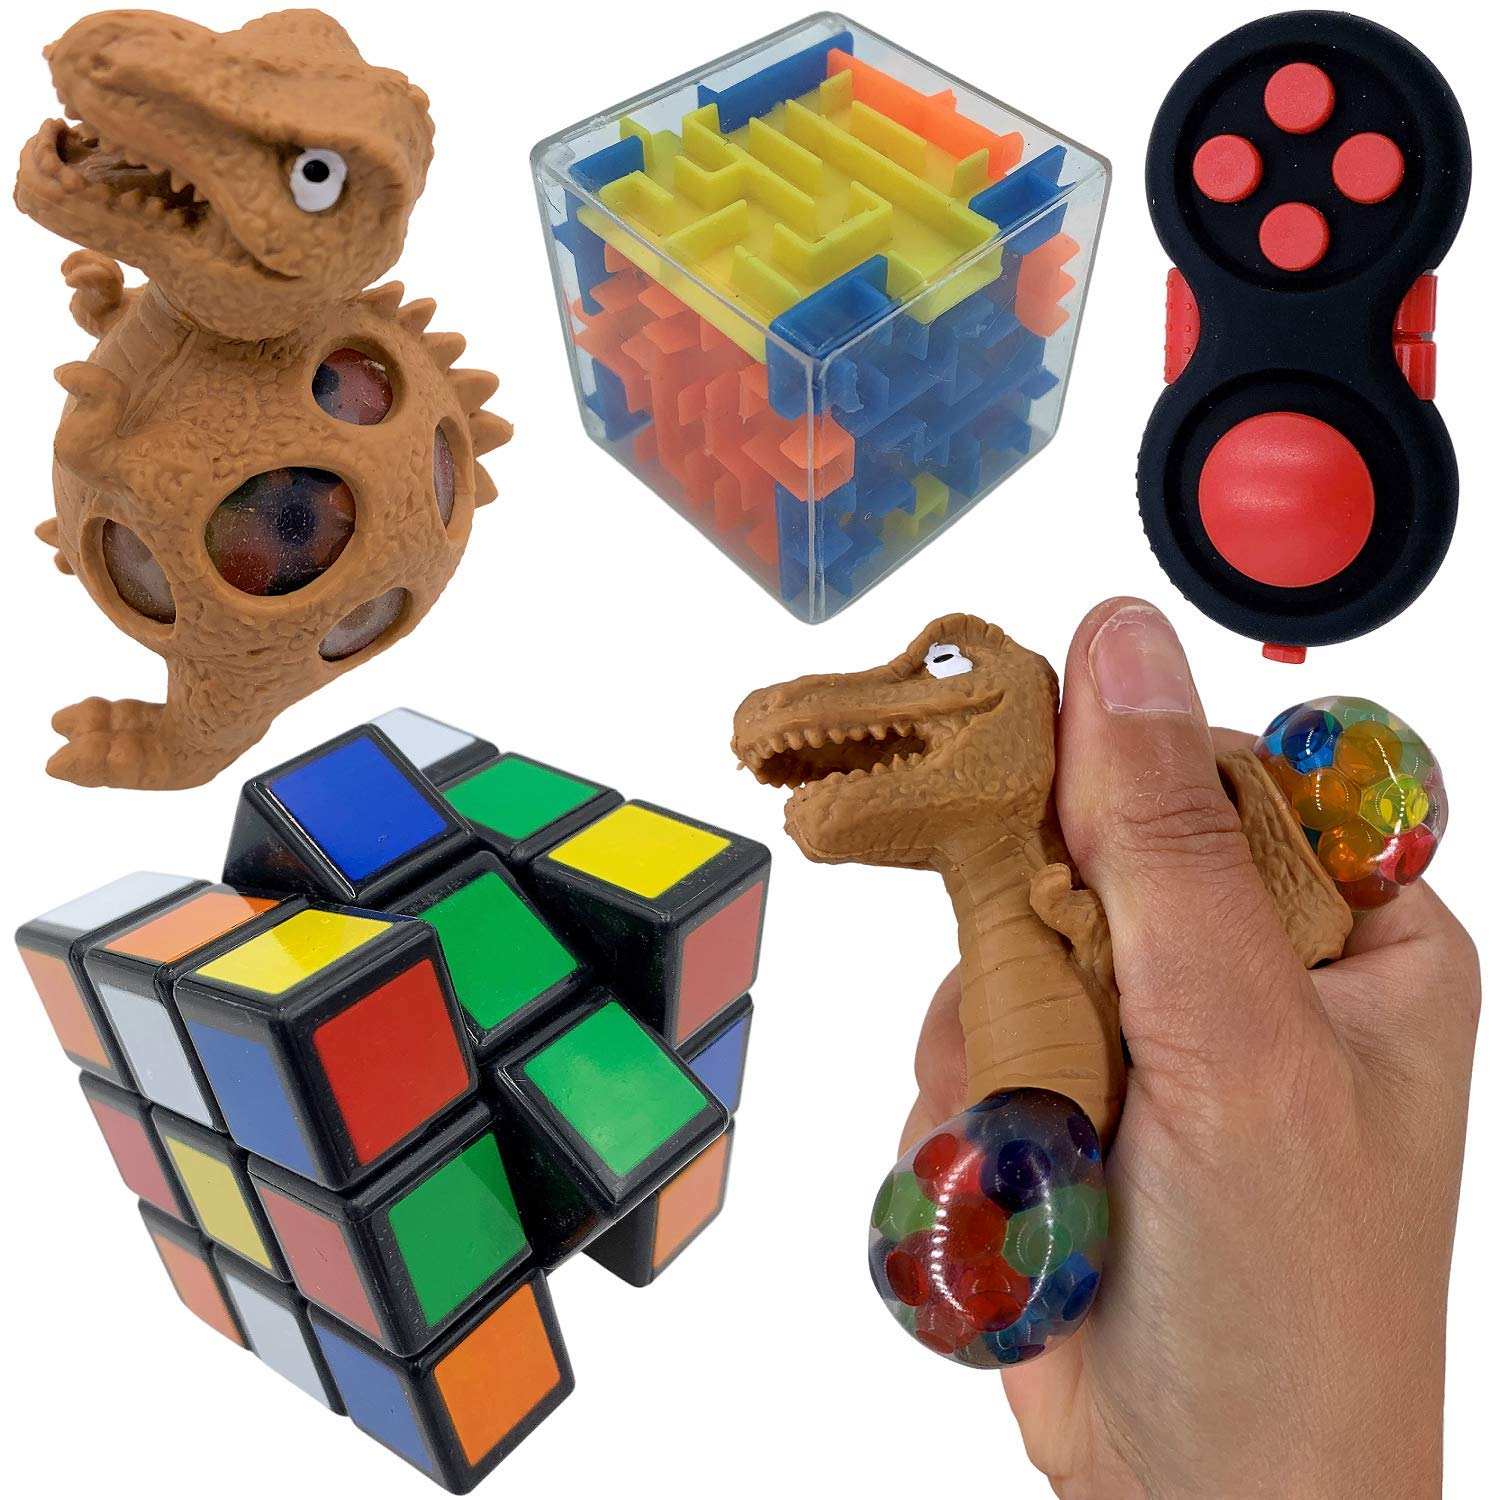 Sensory Fidget Toys Set - 25 Pack - Stress Relief and Anti Anxiety Toys for Kids - Cool Fidget Packs with Stress Balls, Fidget Cube, & More for Party Favors, Prizes, Travel, & Pinata Stuffers